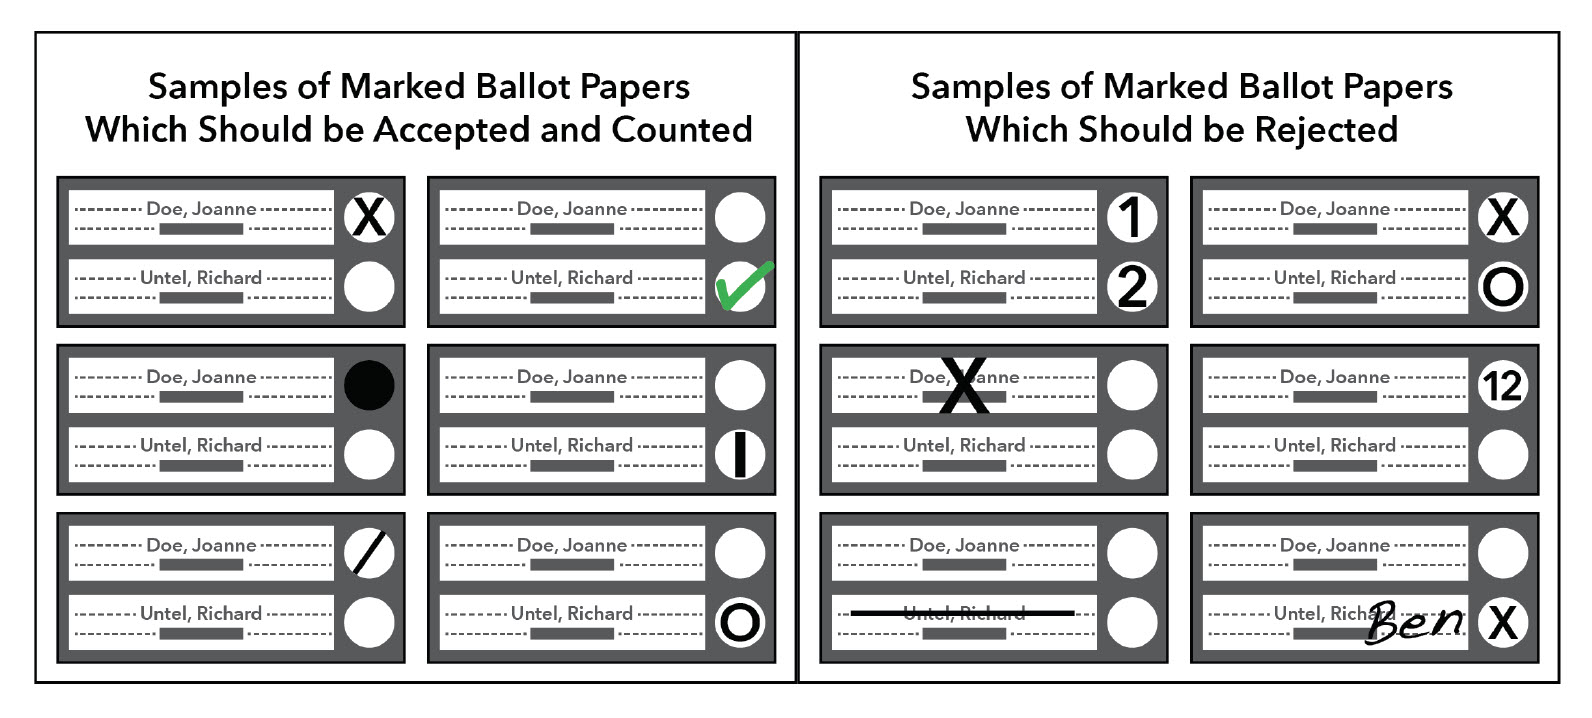 Samples of marked ballot papers